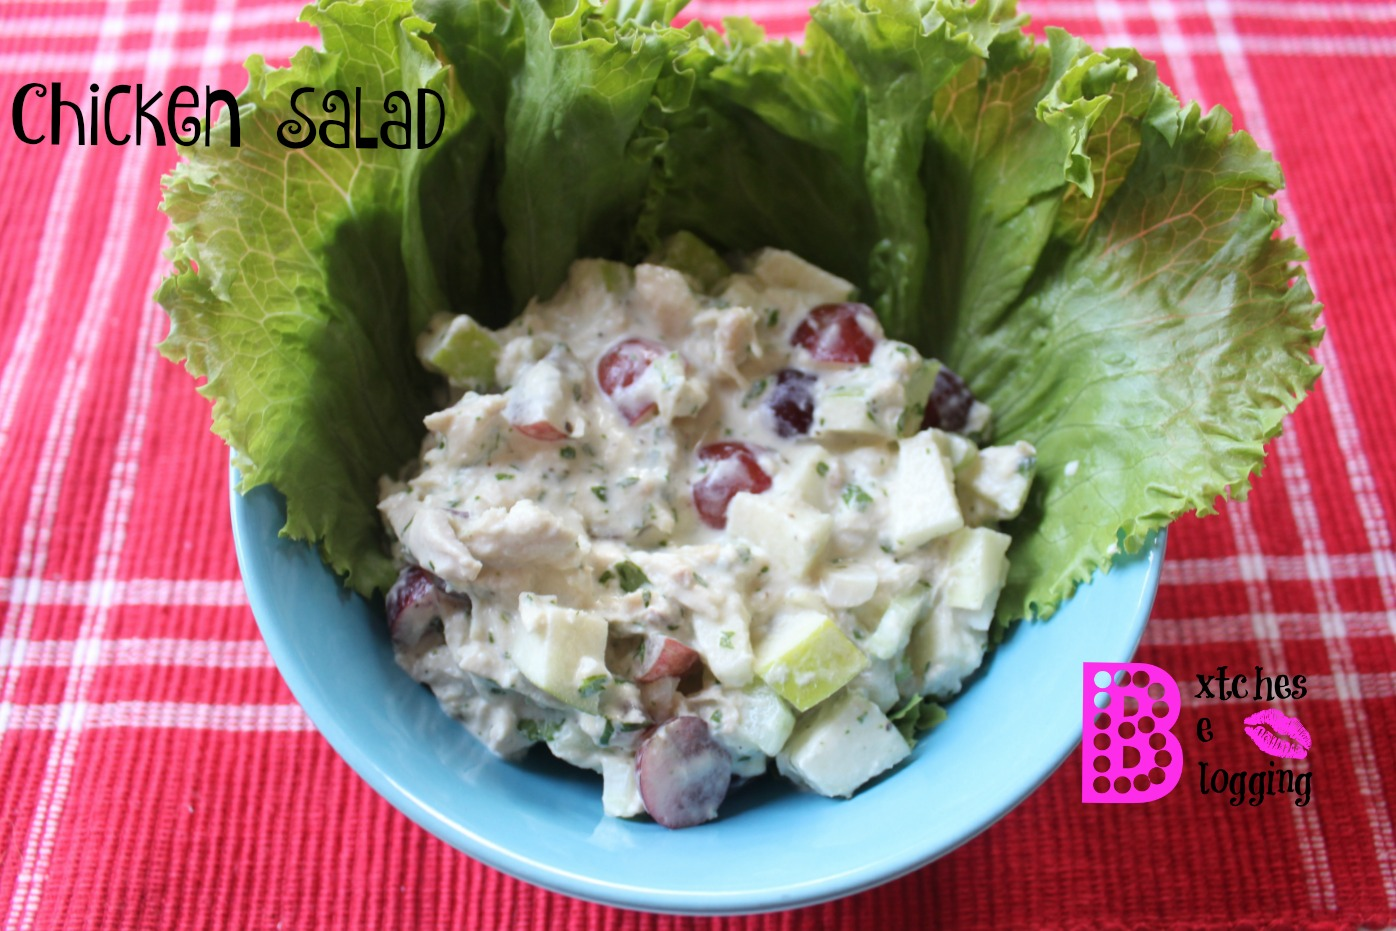 Chicken Salad | Recipe on www.bxtchesbeblogging.com